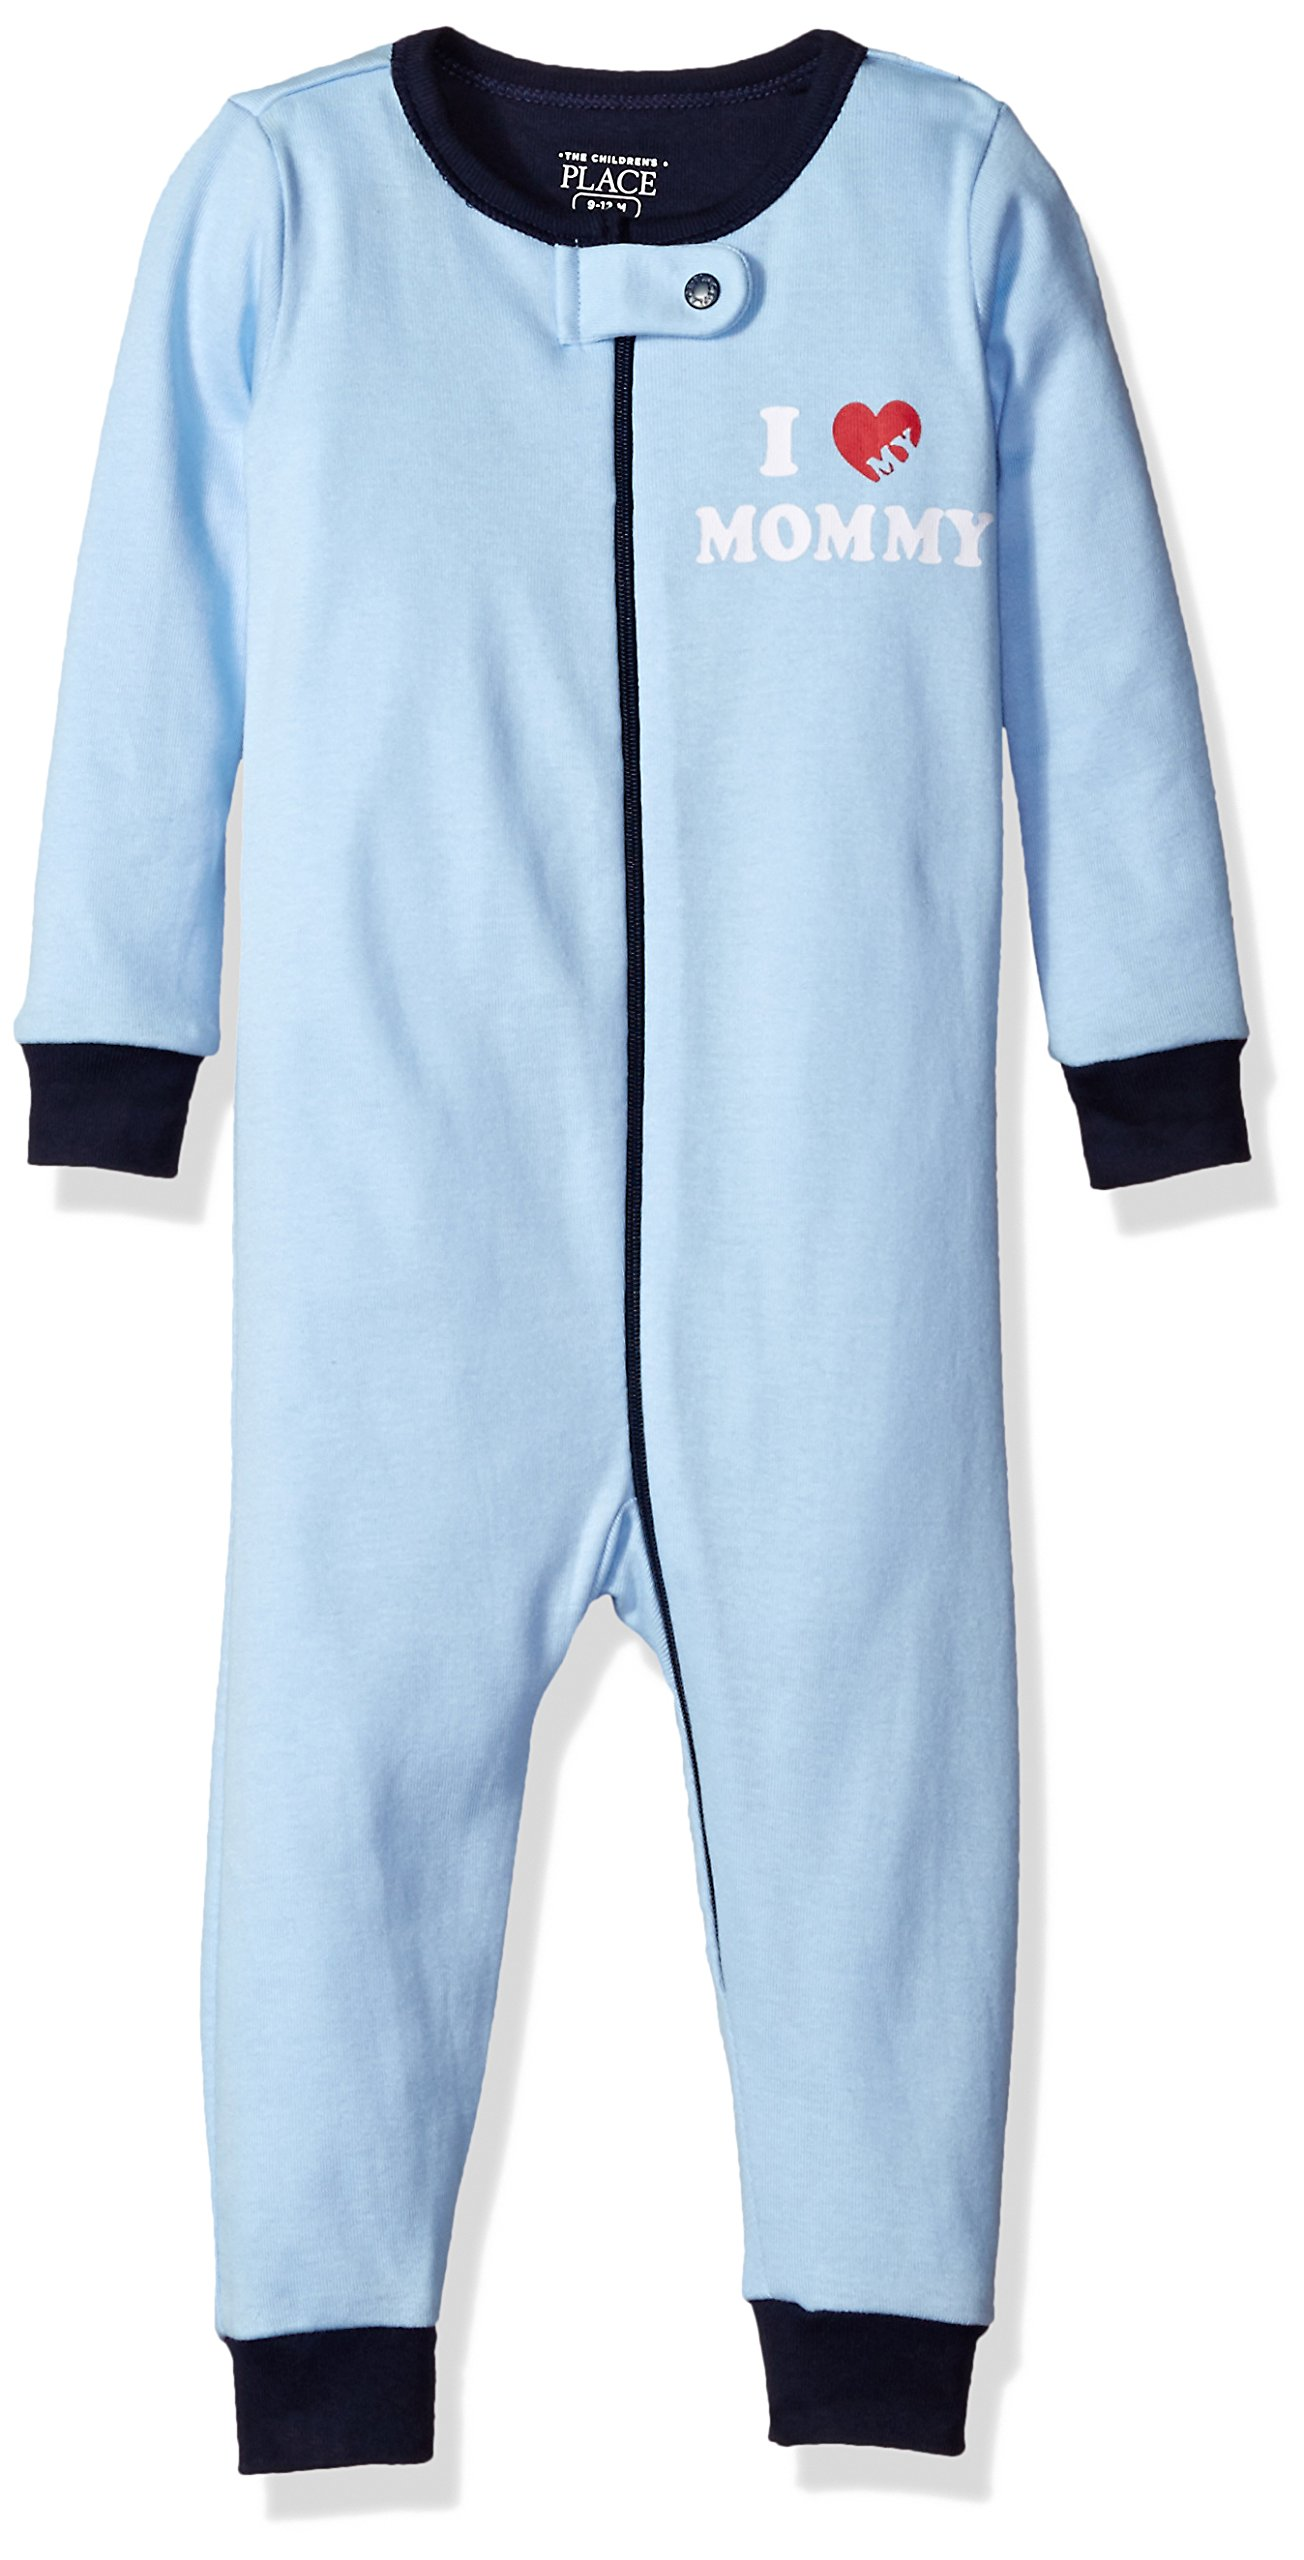 The Children's Place Baby Boys' Long Sleeve One-Piece Pajamas 2